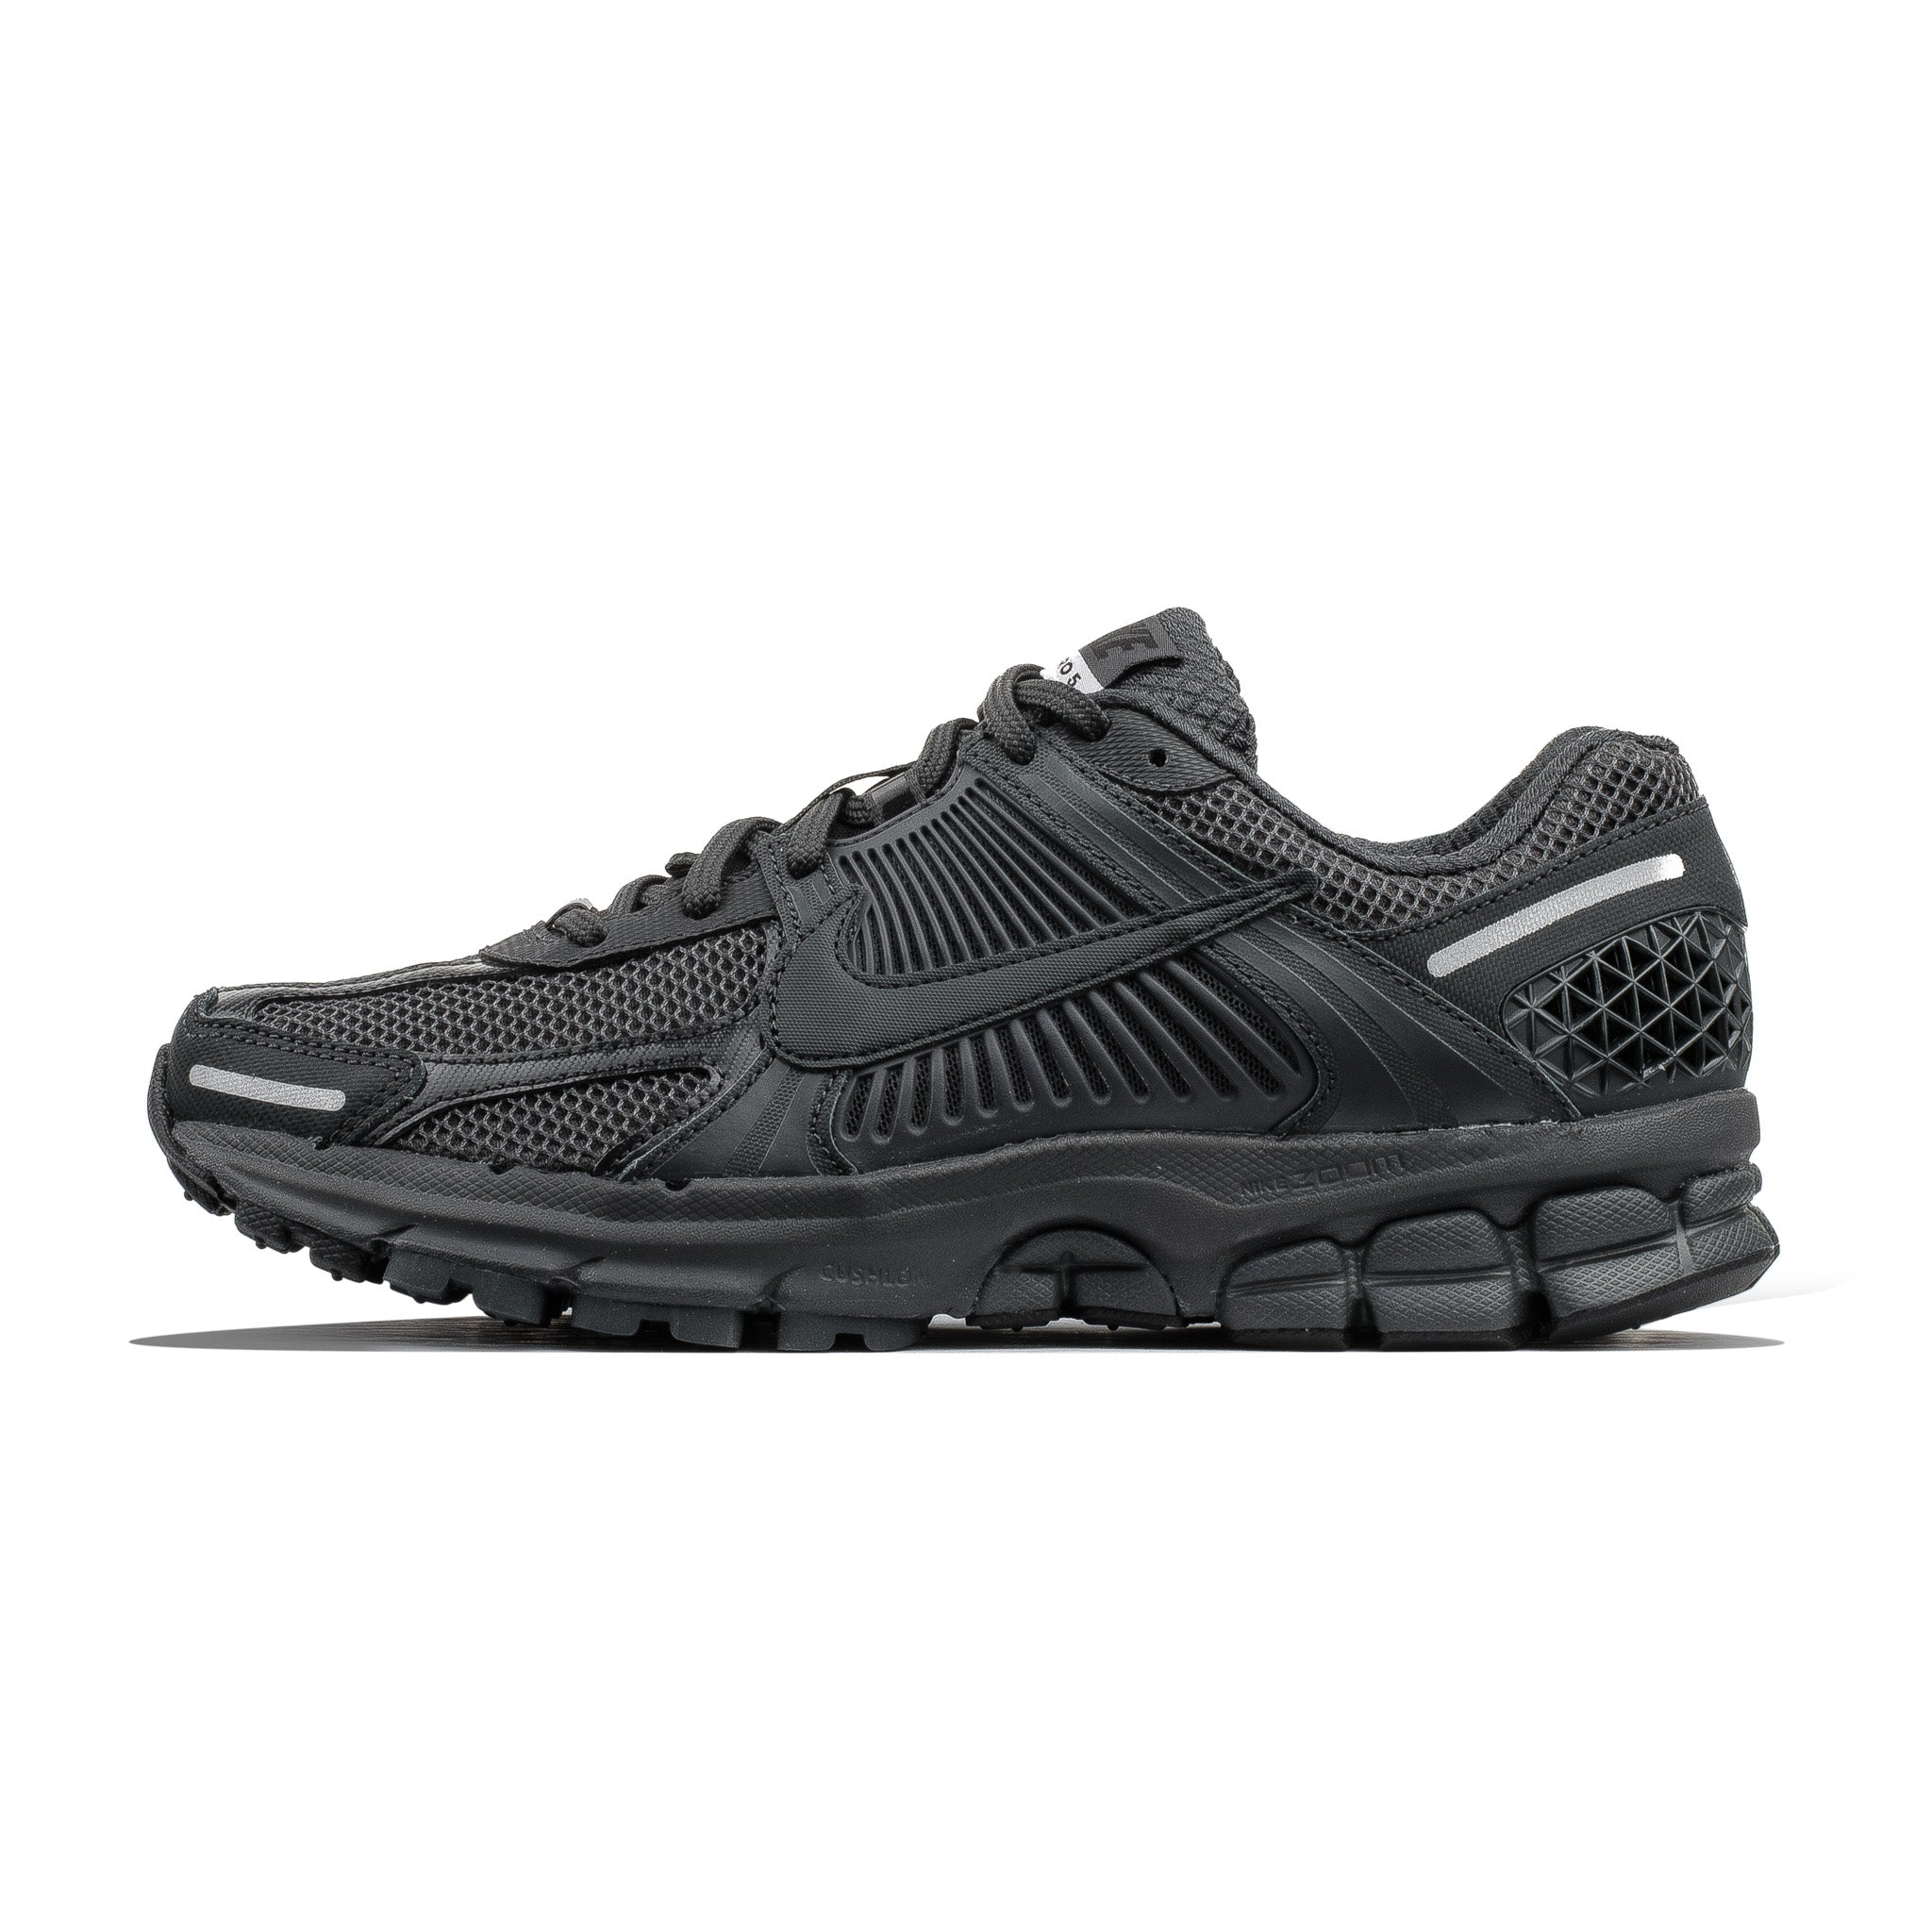 Nike Zoom Vomero 5 SP BV1358-002 Anthracite